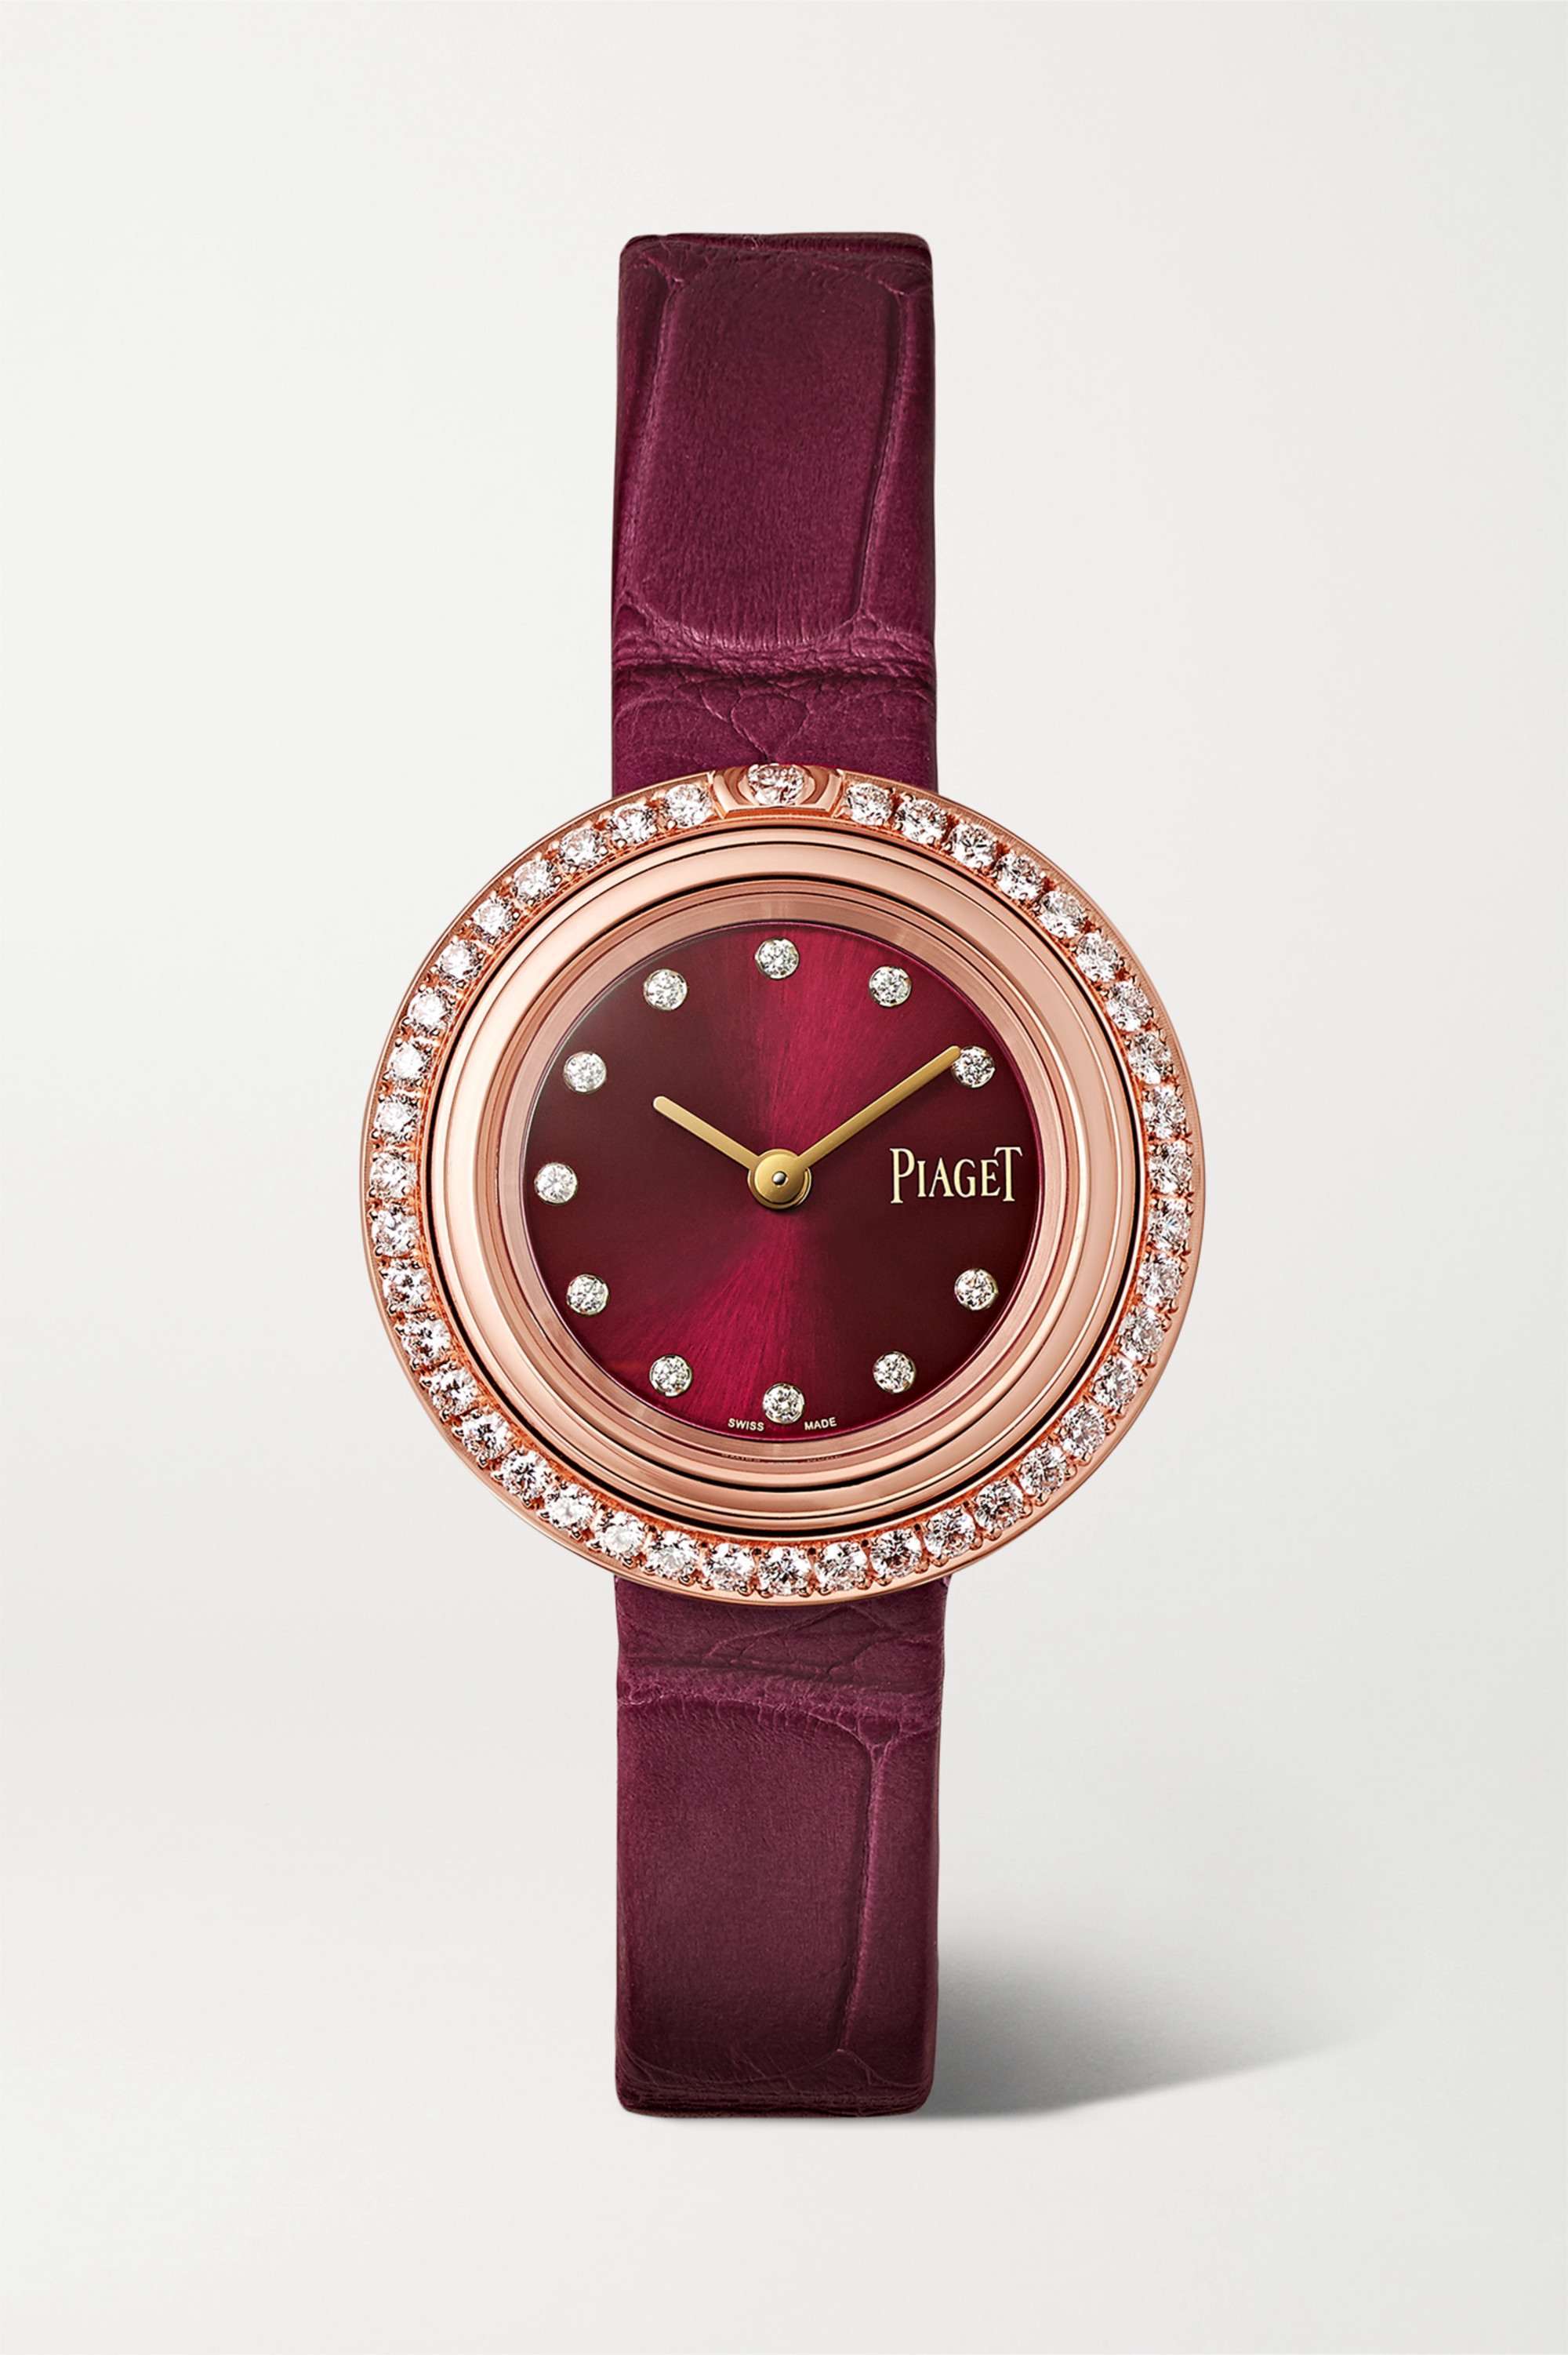 Piaget Montre en or rose 18 carats et diamants à bracelet en alligator Possession 29 mm